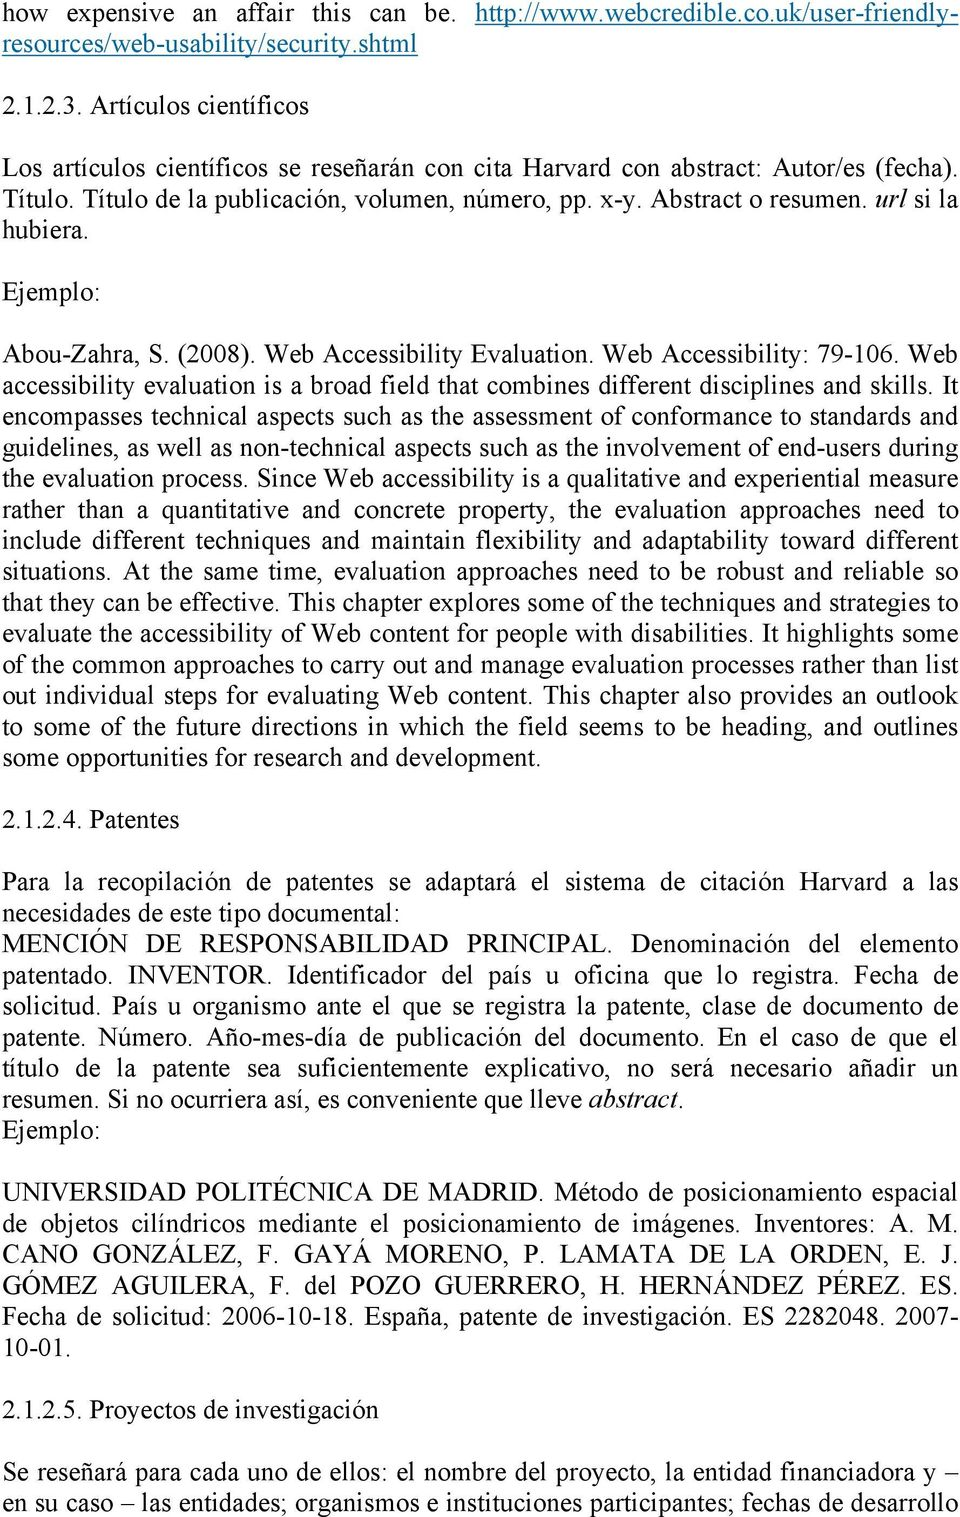 url si la hubiera. Ejemplo: Abou-Zahra, S. (2008). Web Accessibility Evaluation. Web Accessibility: 79-106.